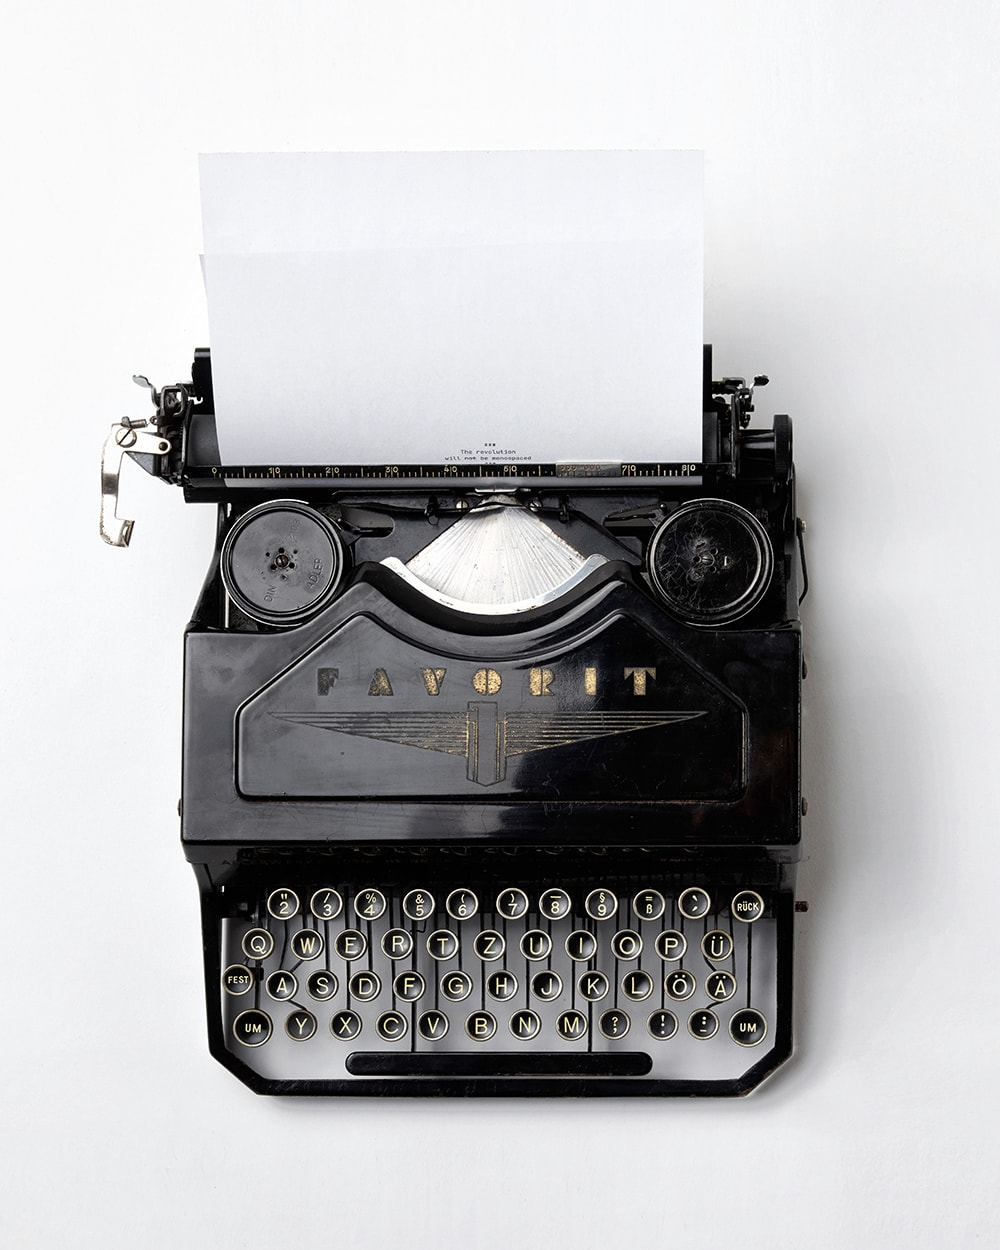 Typewriter: one of the ways to make money online: become a freelance writer